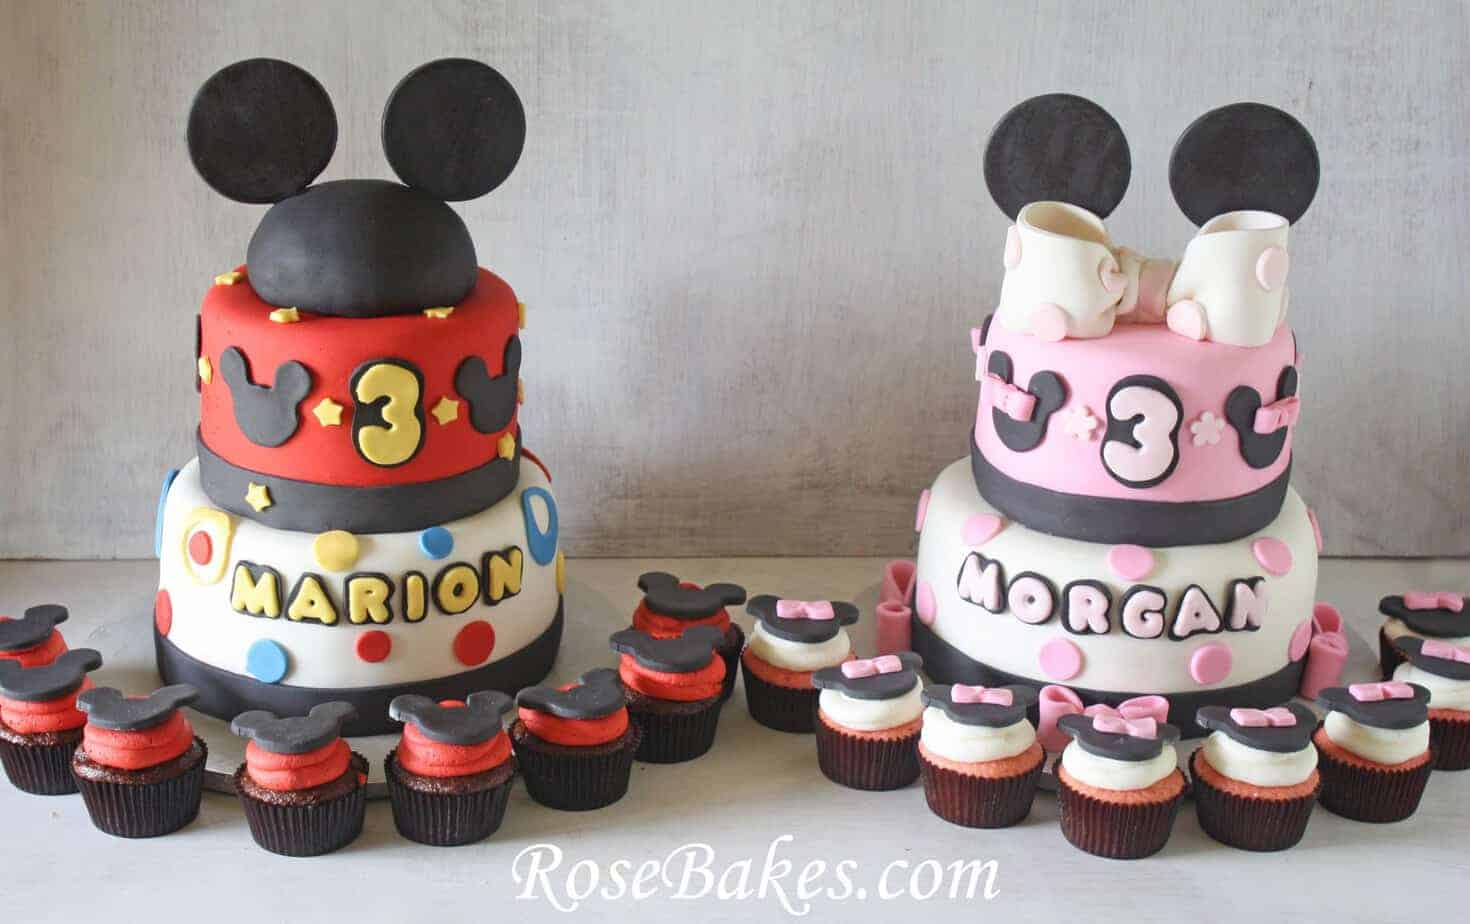 Mickey and Minnie Mouse Birthday Cakes & Cupcakes for Boy & Girl Twins